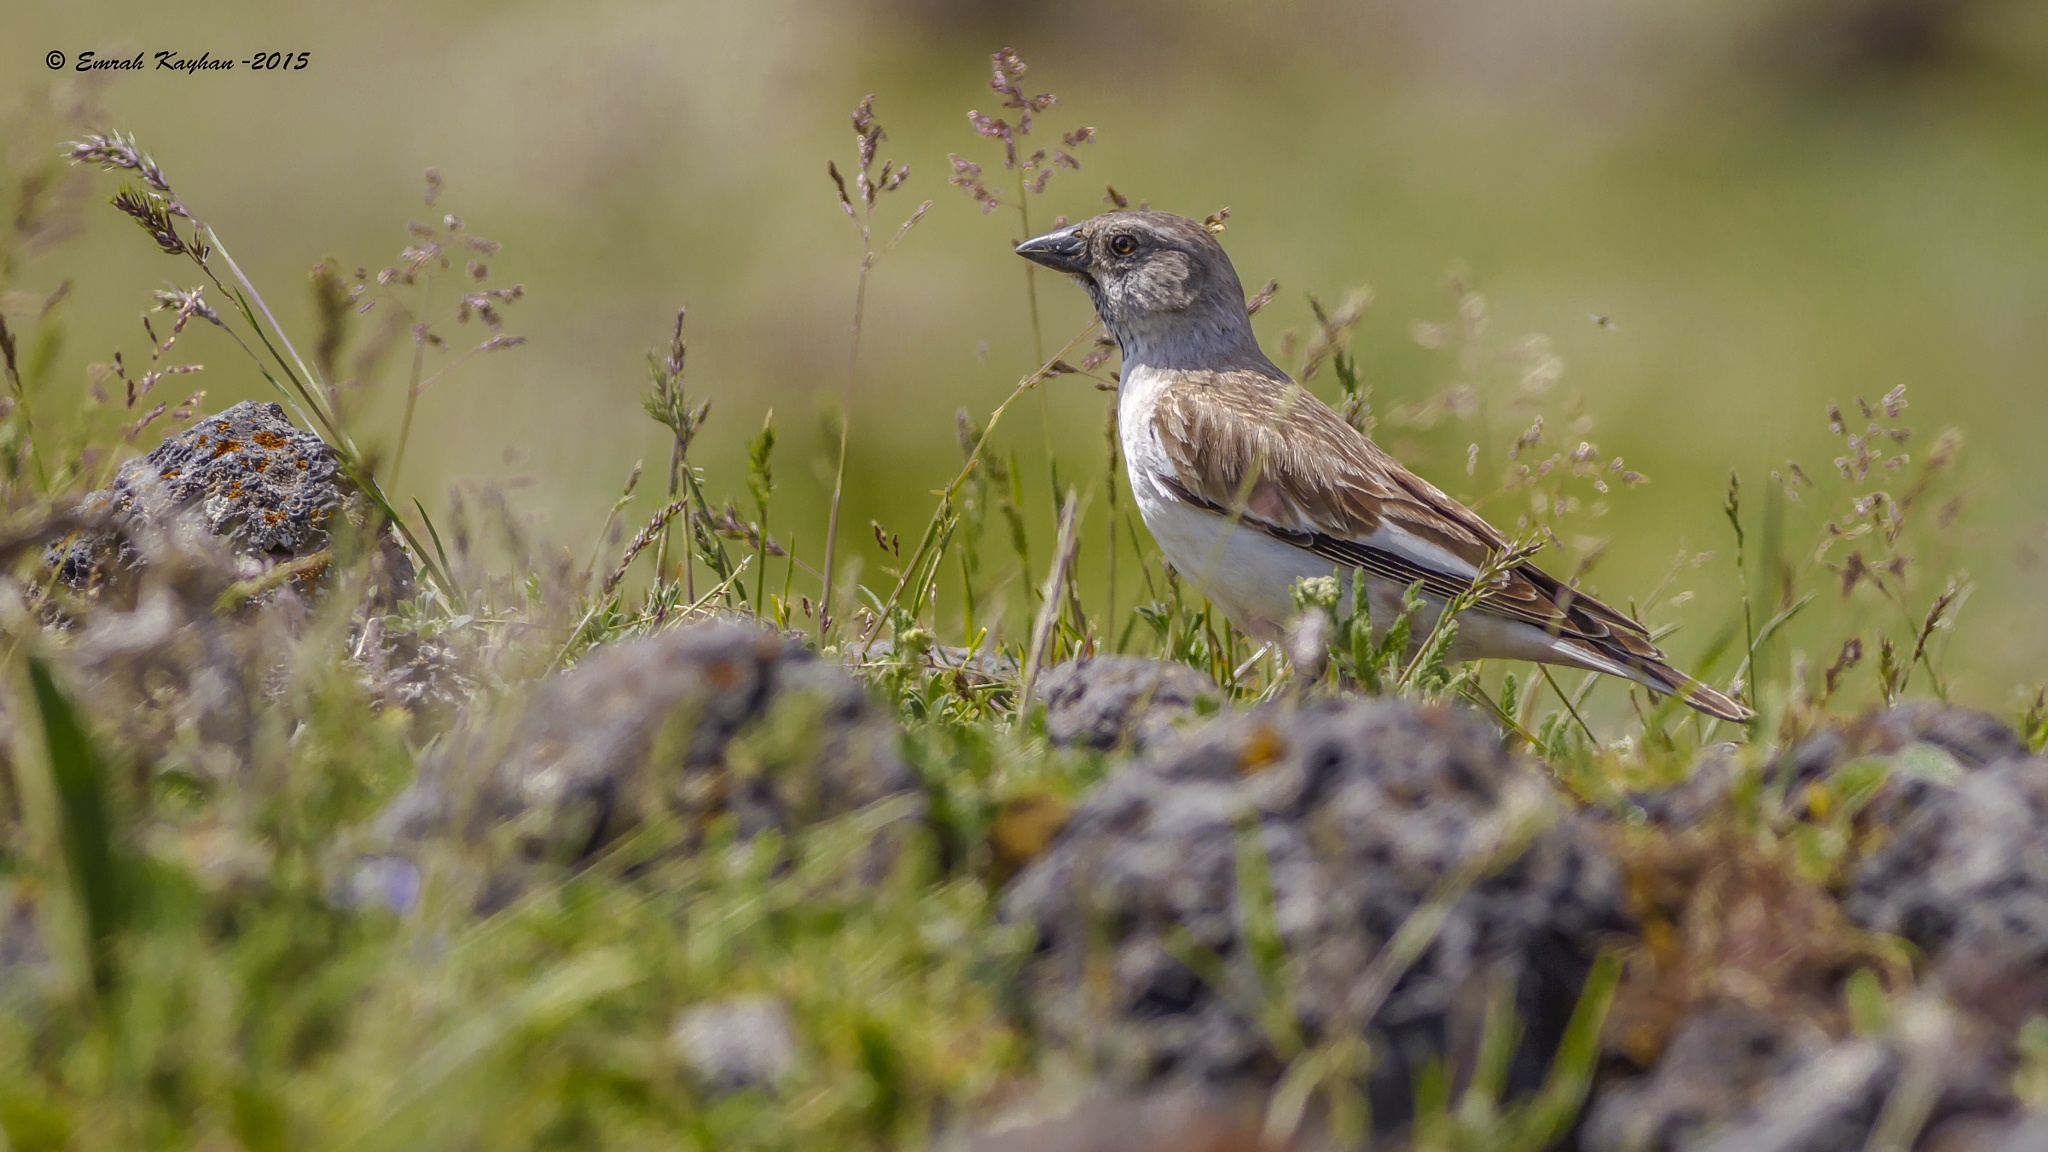 White-winged Snowfinch  by EmrahKayhan